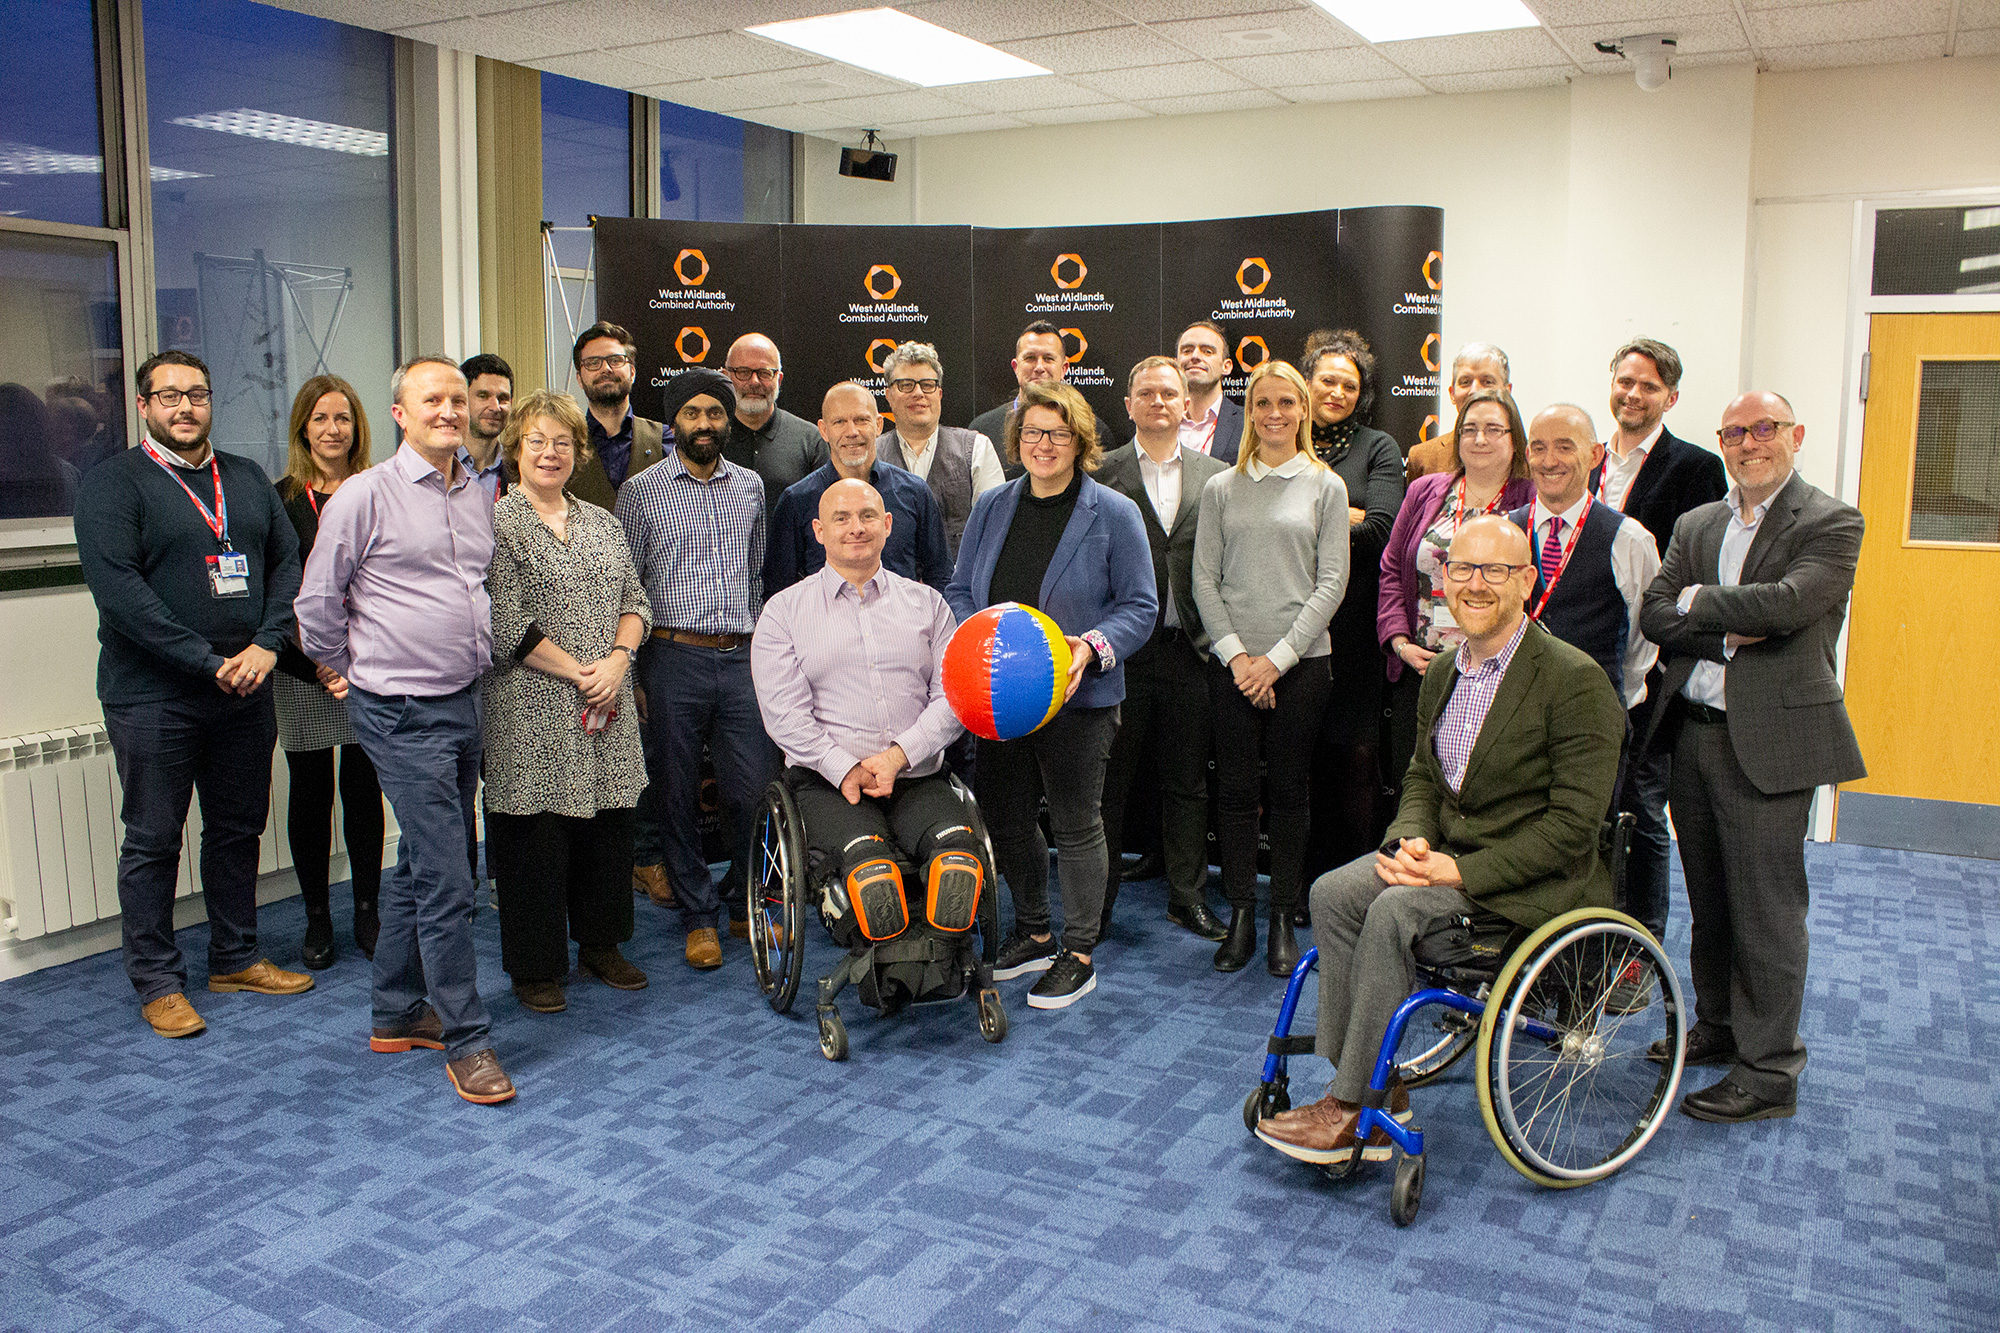 New partnership working to boost the region's fitness and activity levels